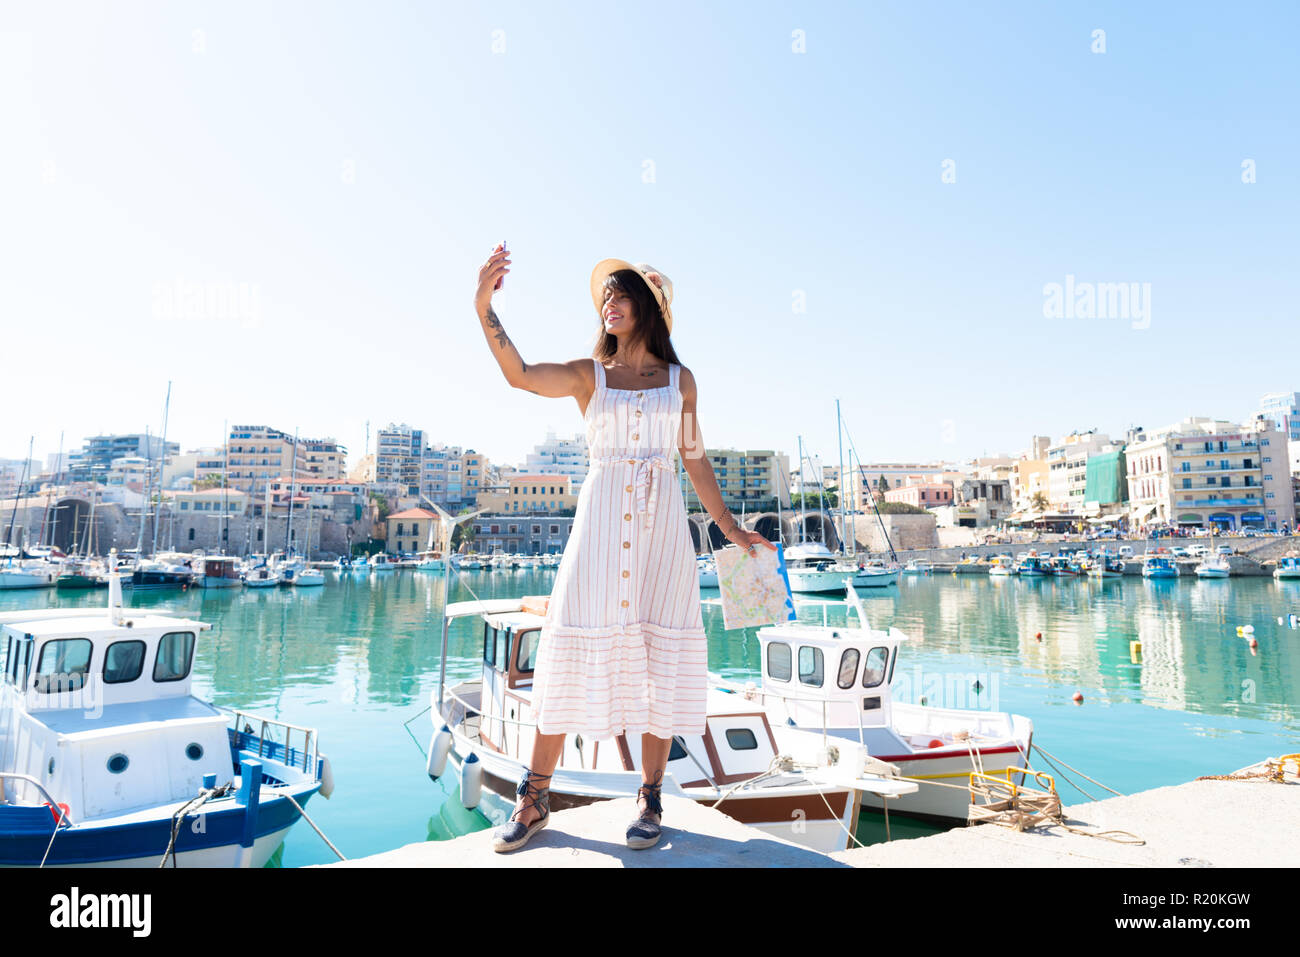 Traveling tourist woman on vacation in Heraklion Crete taking selfies at the port. Lovely elegant girl takes selfies visiting the famous Mediterranean - Stock Image